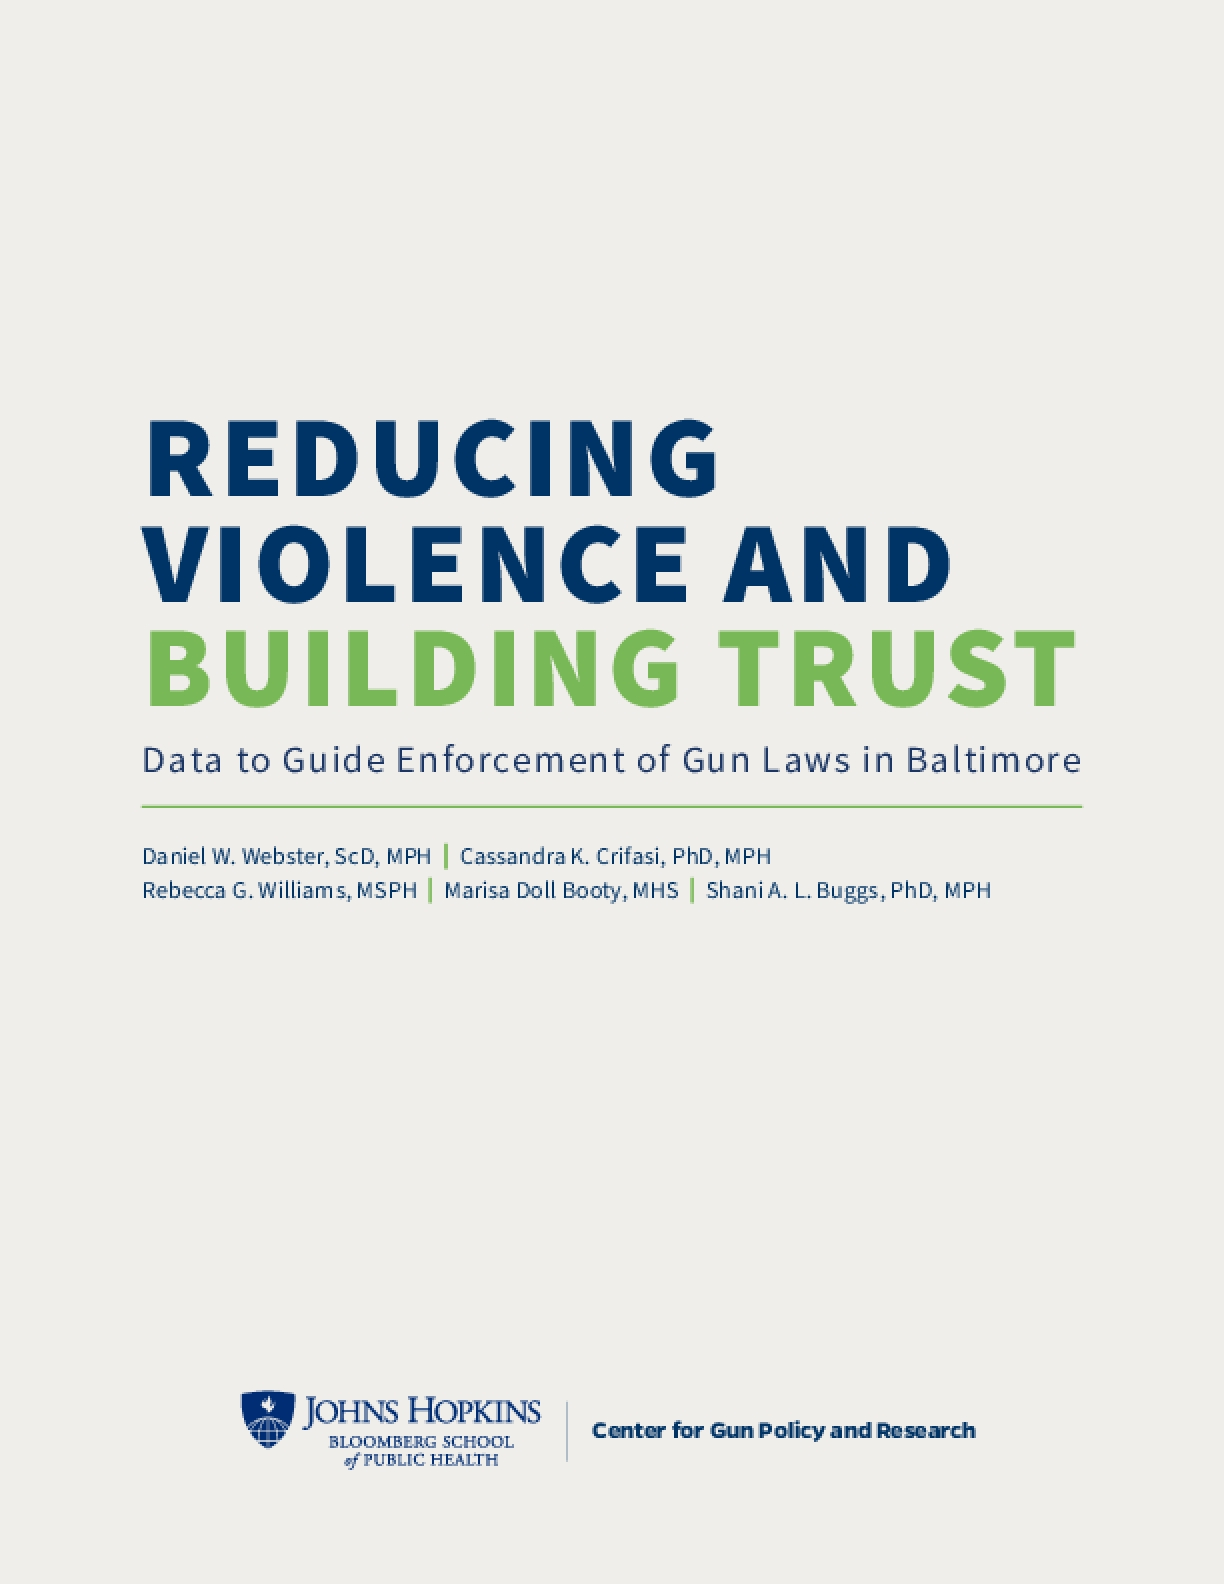 Reducing Violence and Building Trust: Data to Guide Enforcement of Gun Laws in Baltimore